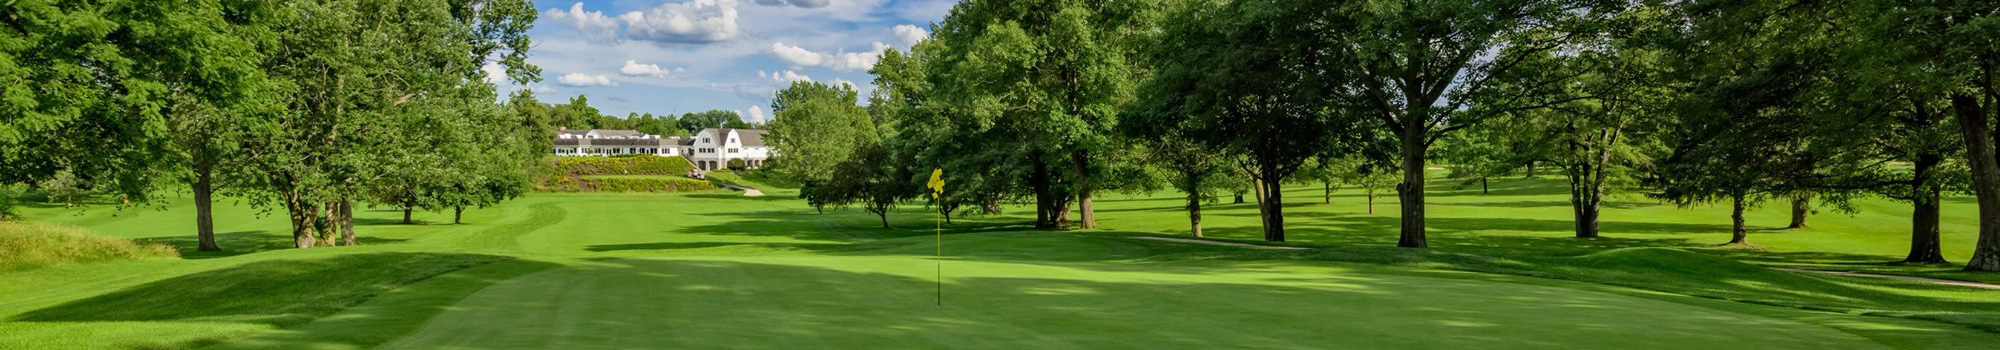 the best golf course near Dayton in Piqua Ohio